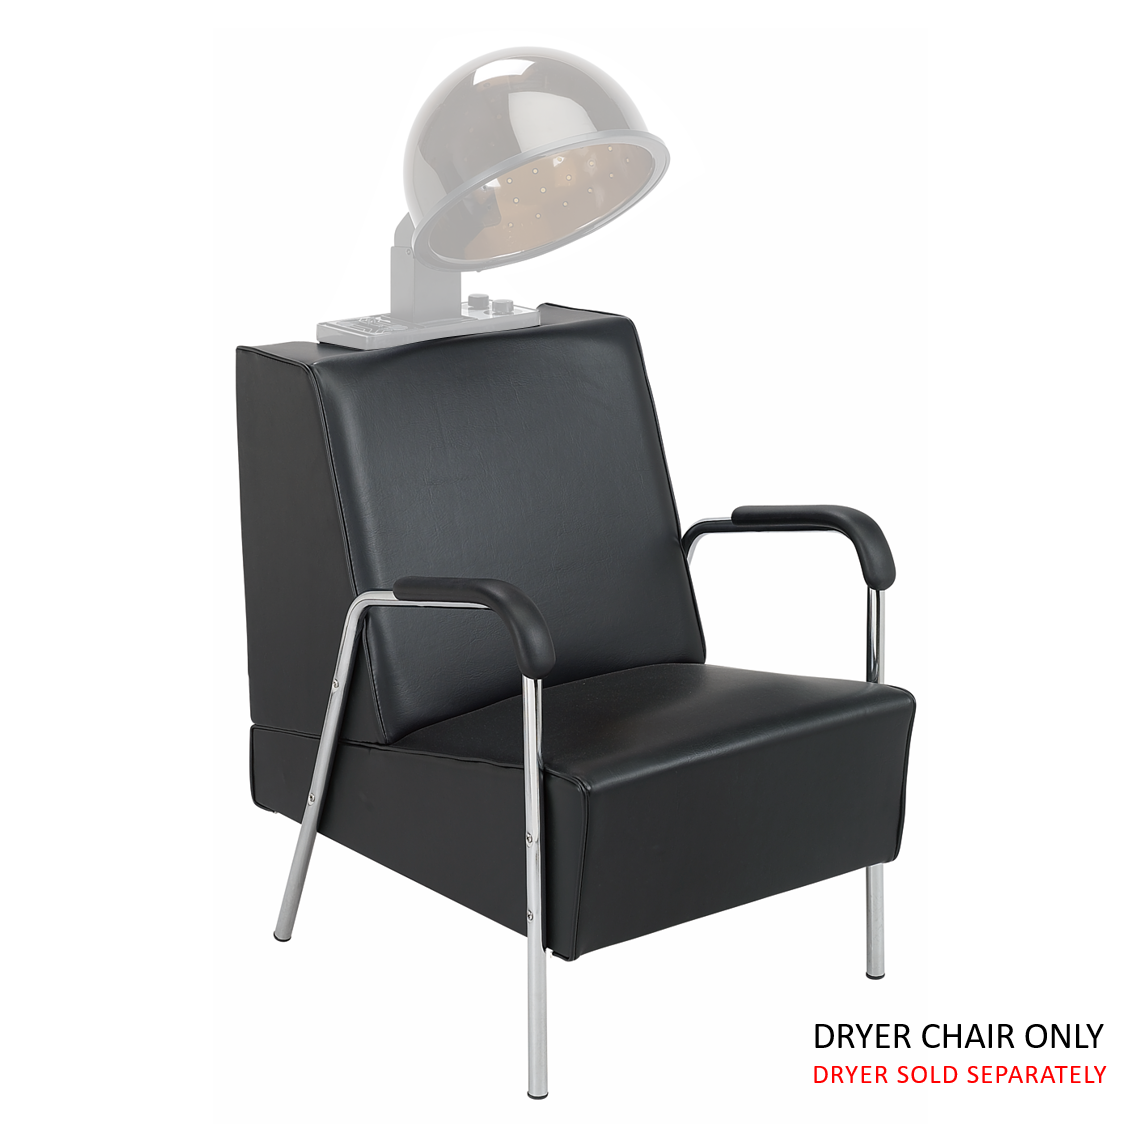 Almont Salon Dryer Chair